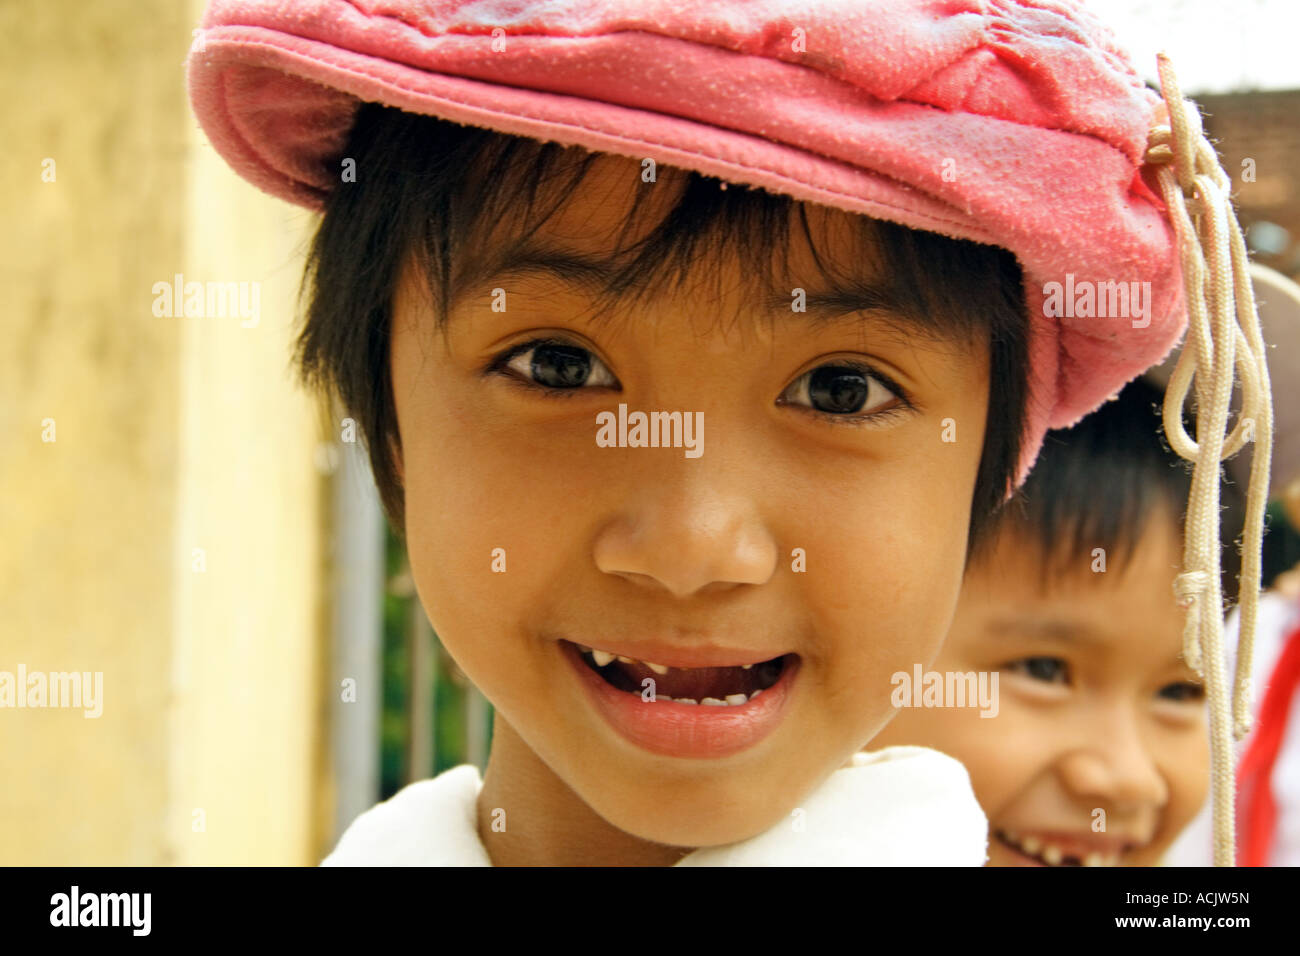 Portrait of a young Vietnamese schoolgirl Stock Photo